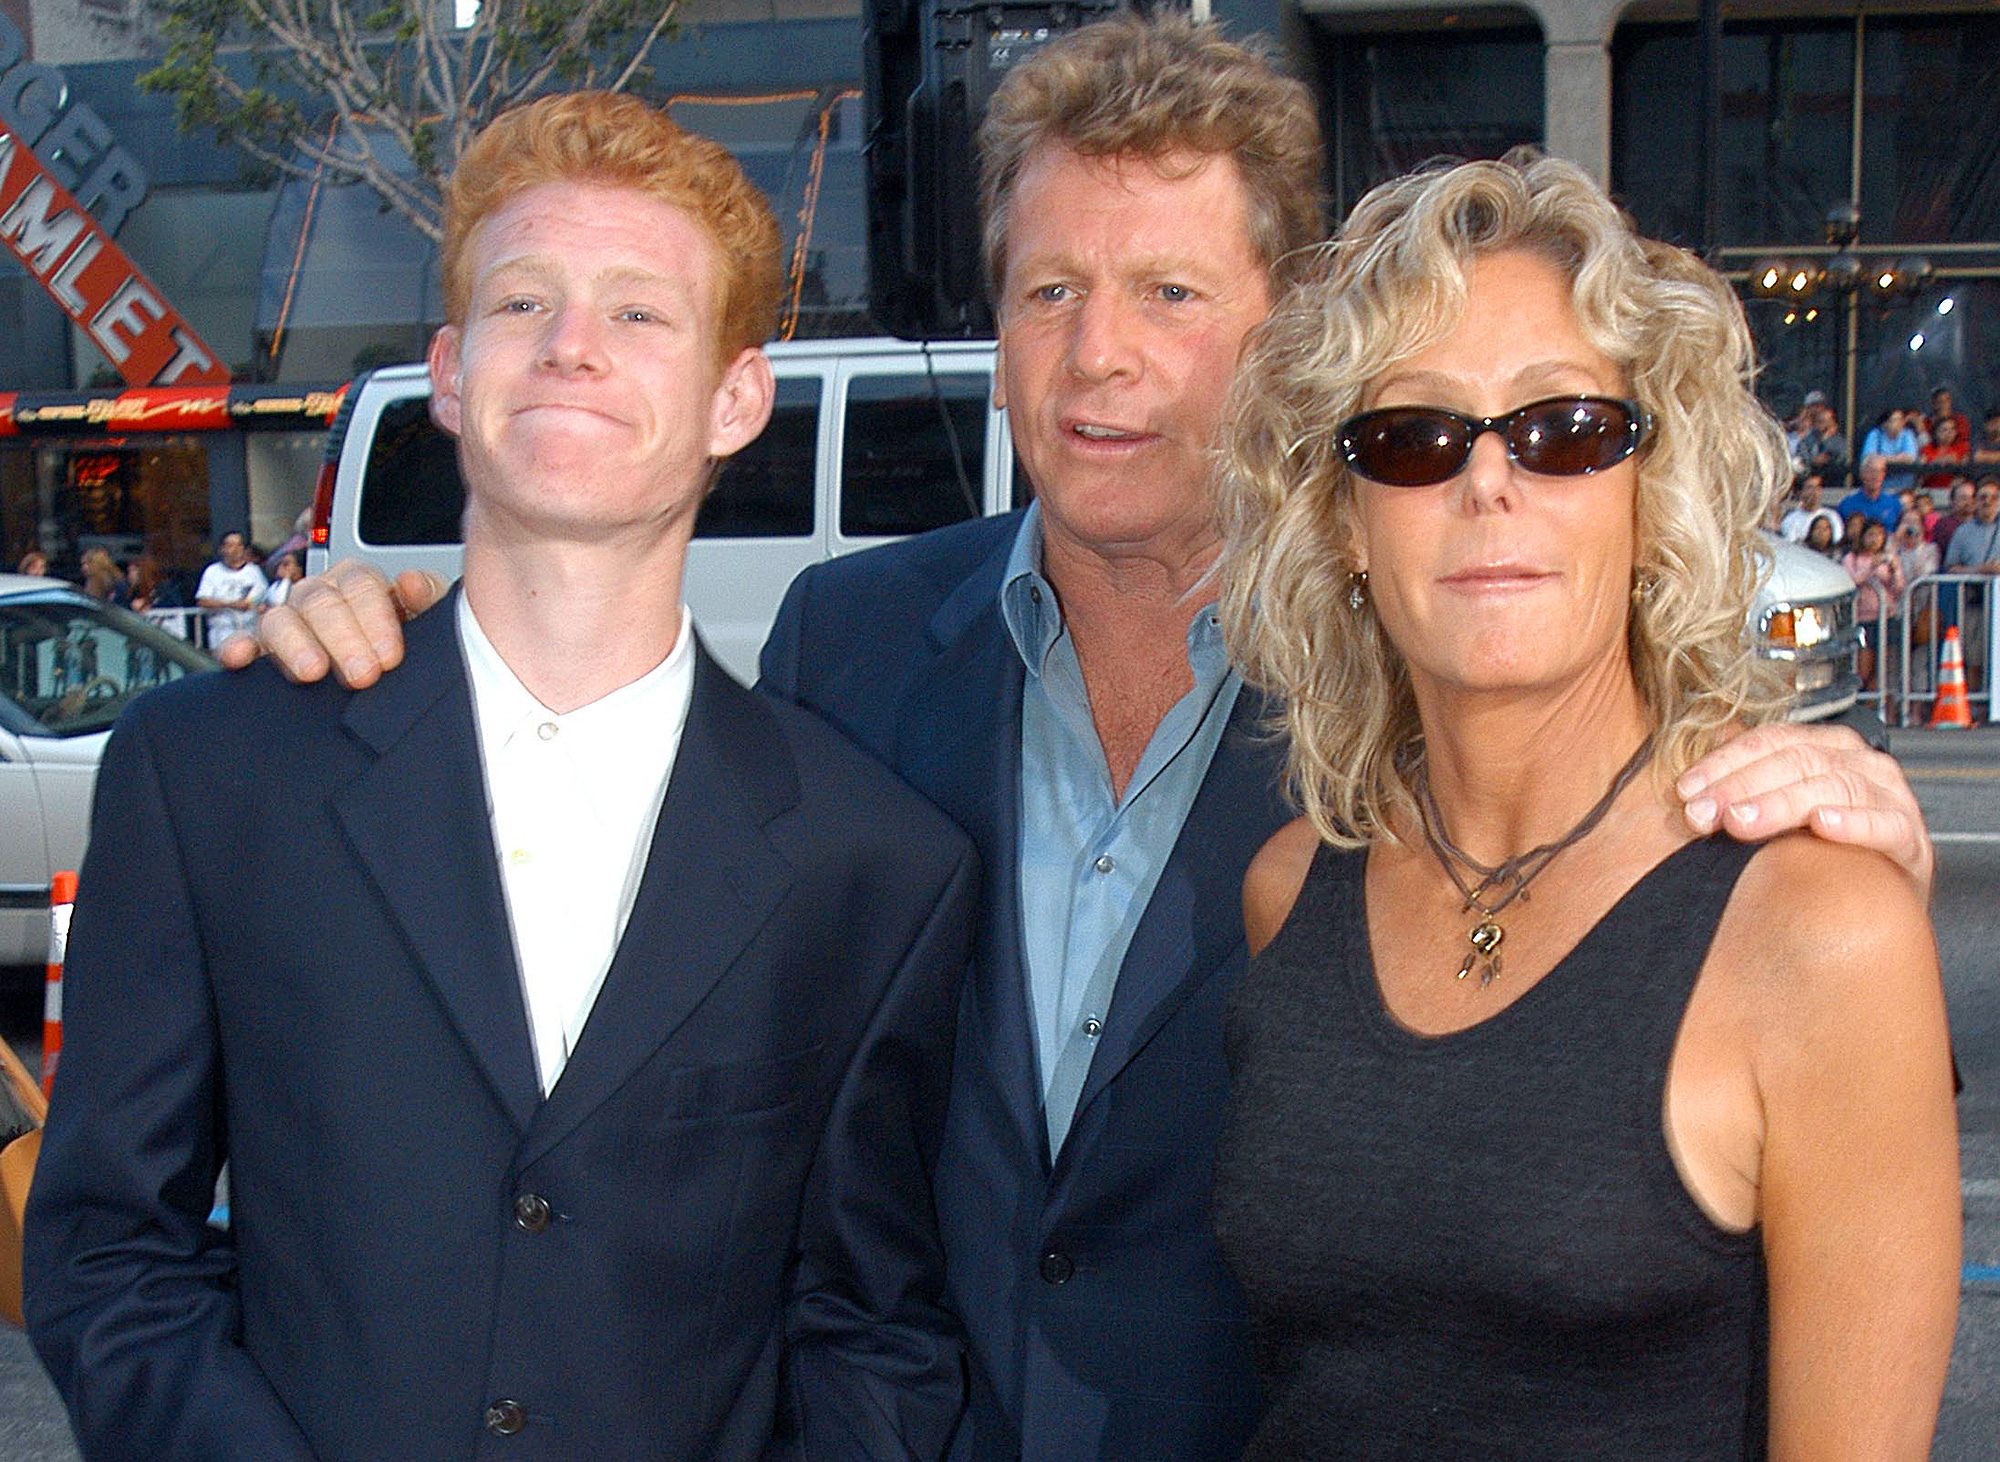 Son of Ryan O'Neal and Farrah Fawcett charged with attempted murder